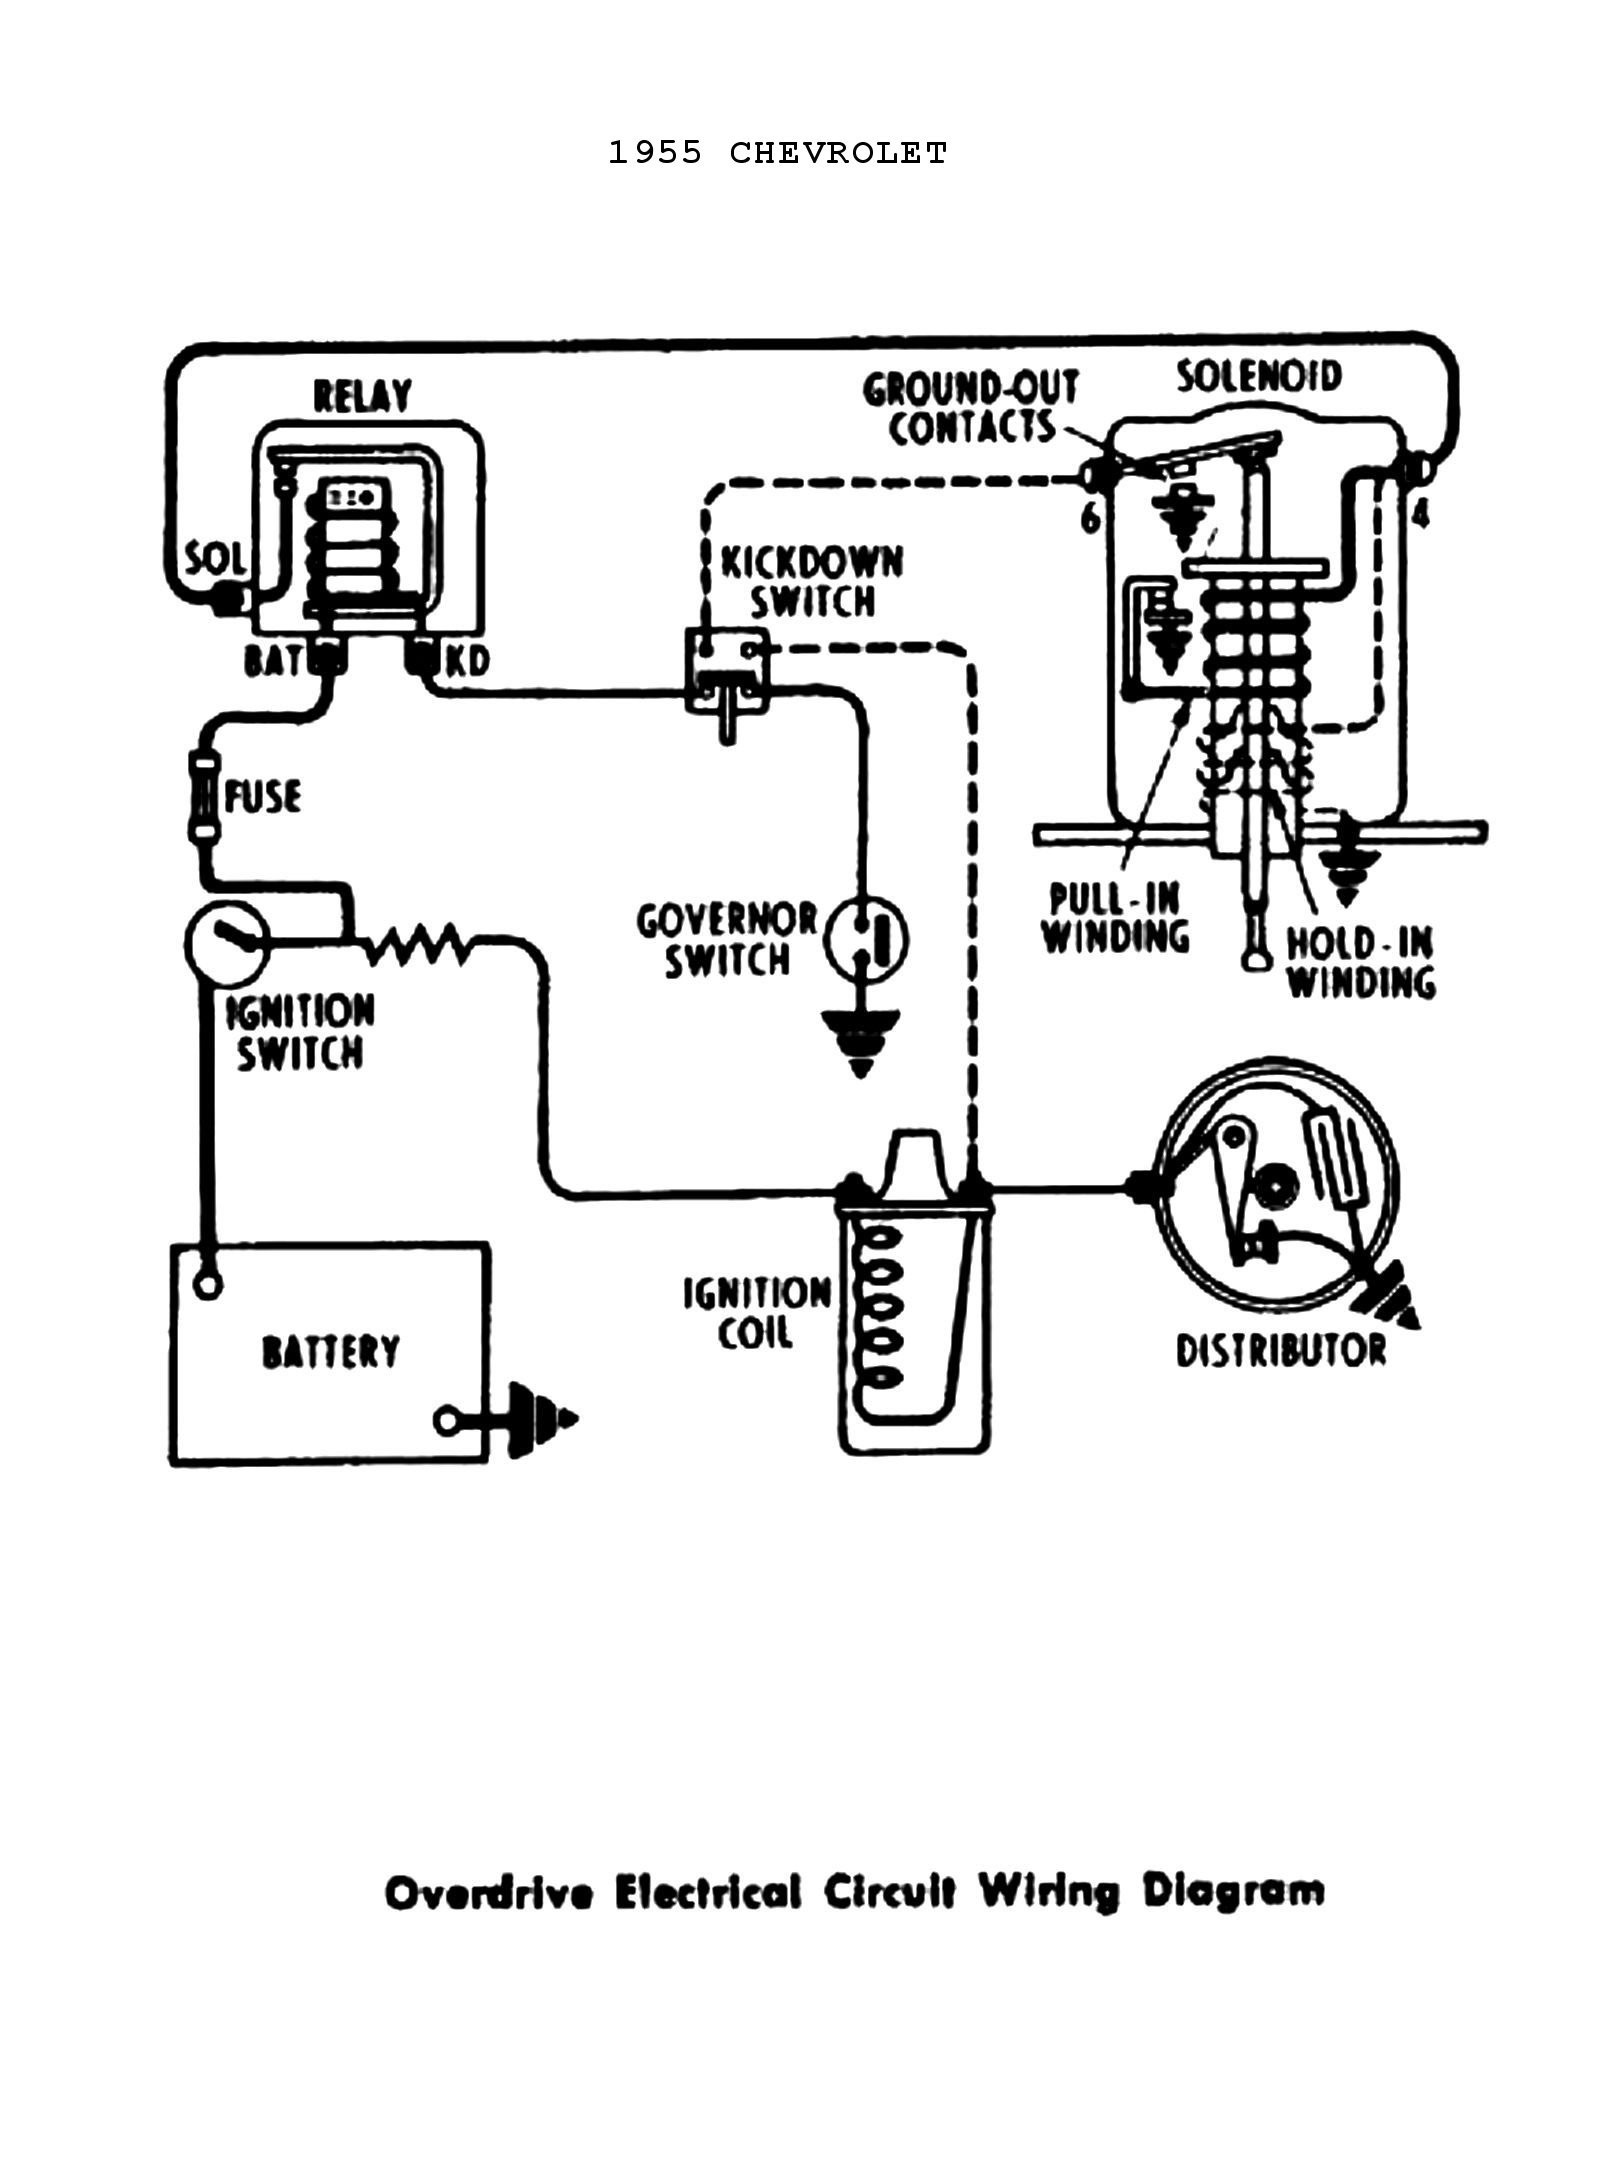 Ignition Switch Wiring Diagram Chevy Luxury Gm Starter solenoid Wiring Diagram Diagram Of Ignition Switch Wiring Diagram Chevy